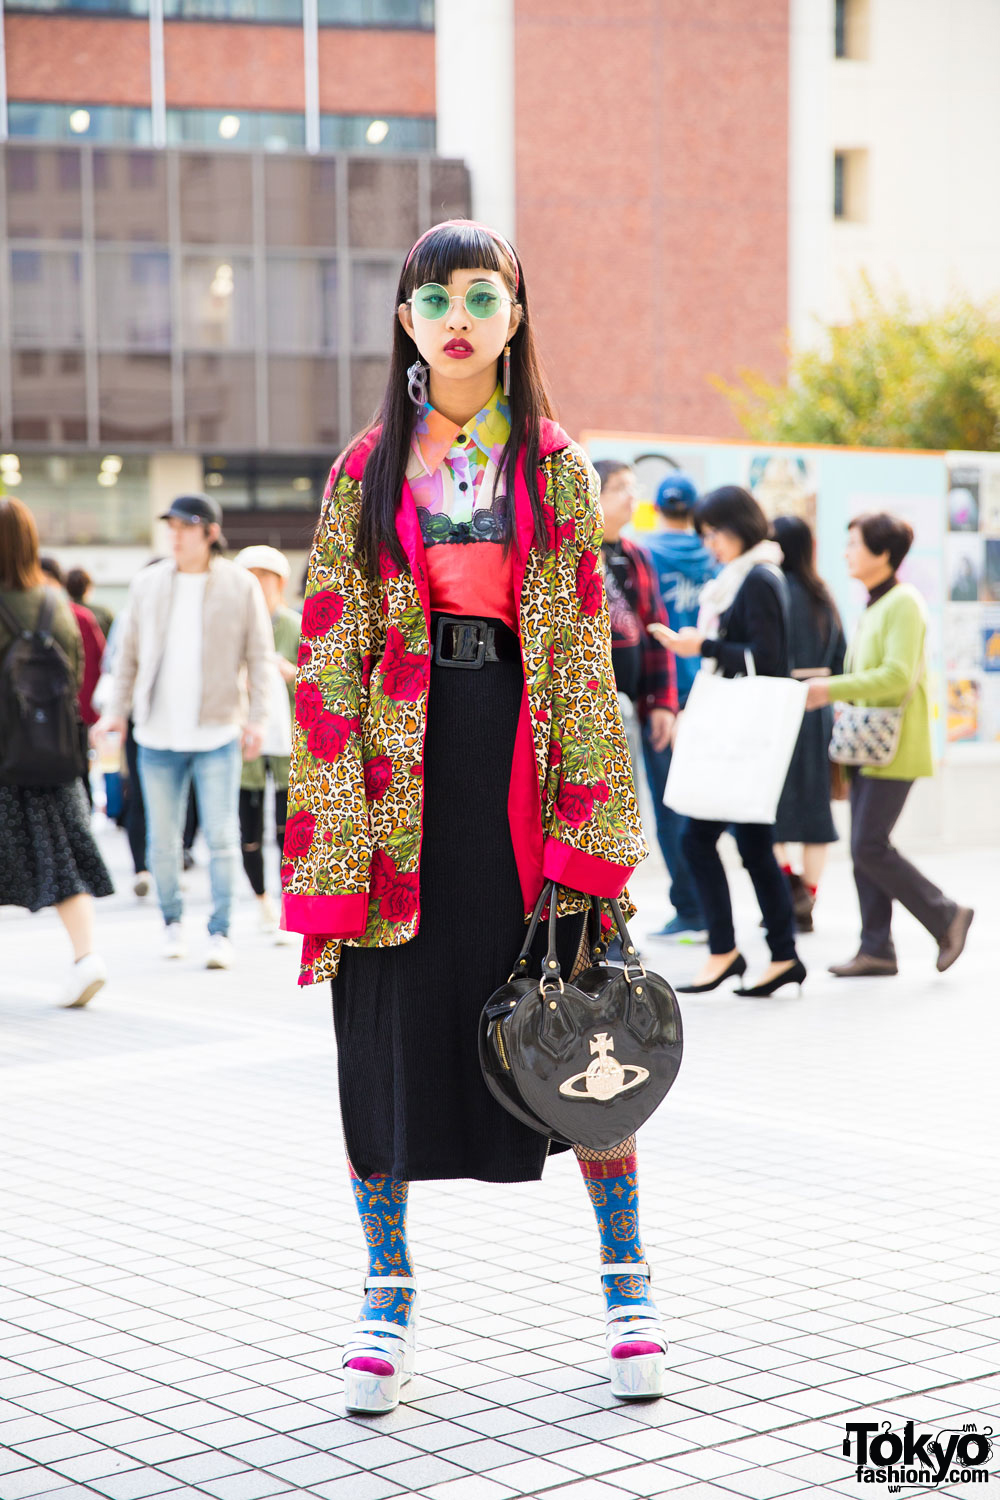 037140b4c9835 Japanese Fashion Student in Vintage Mixed Prints Street Style w  Bubbles  Tokyo   Vivienne Westwood